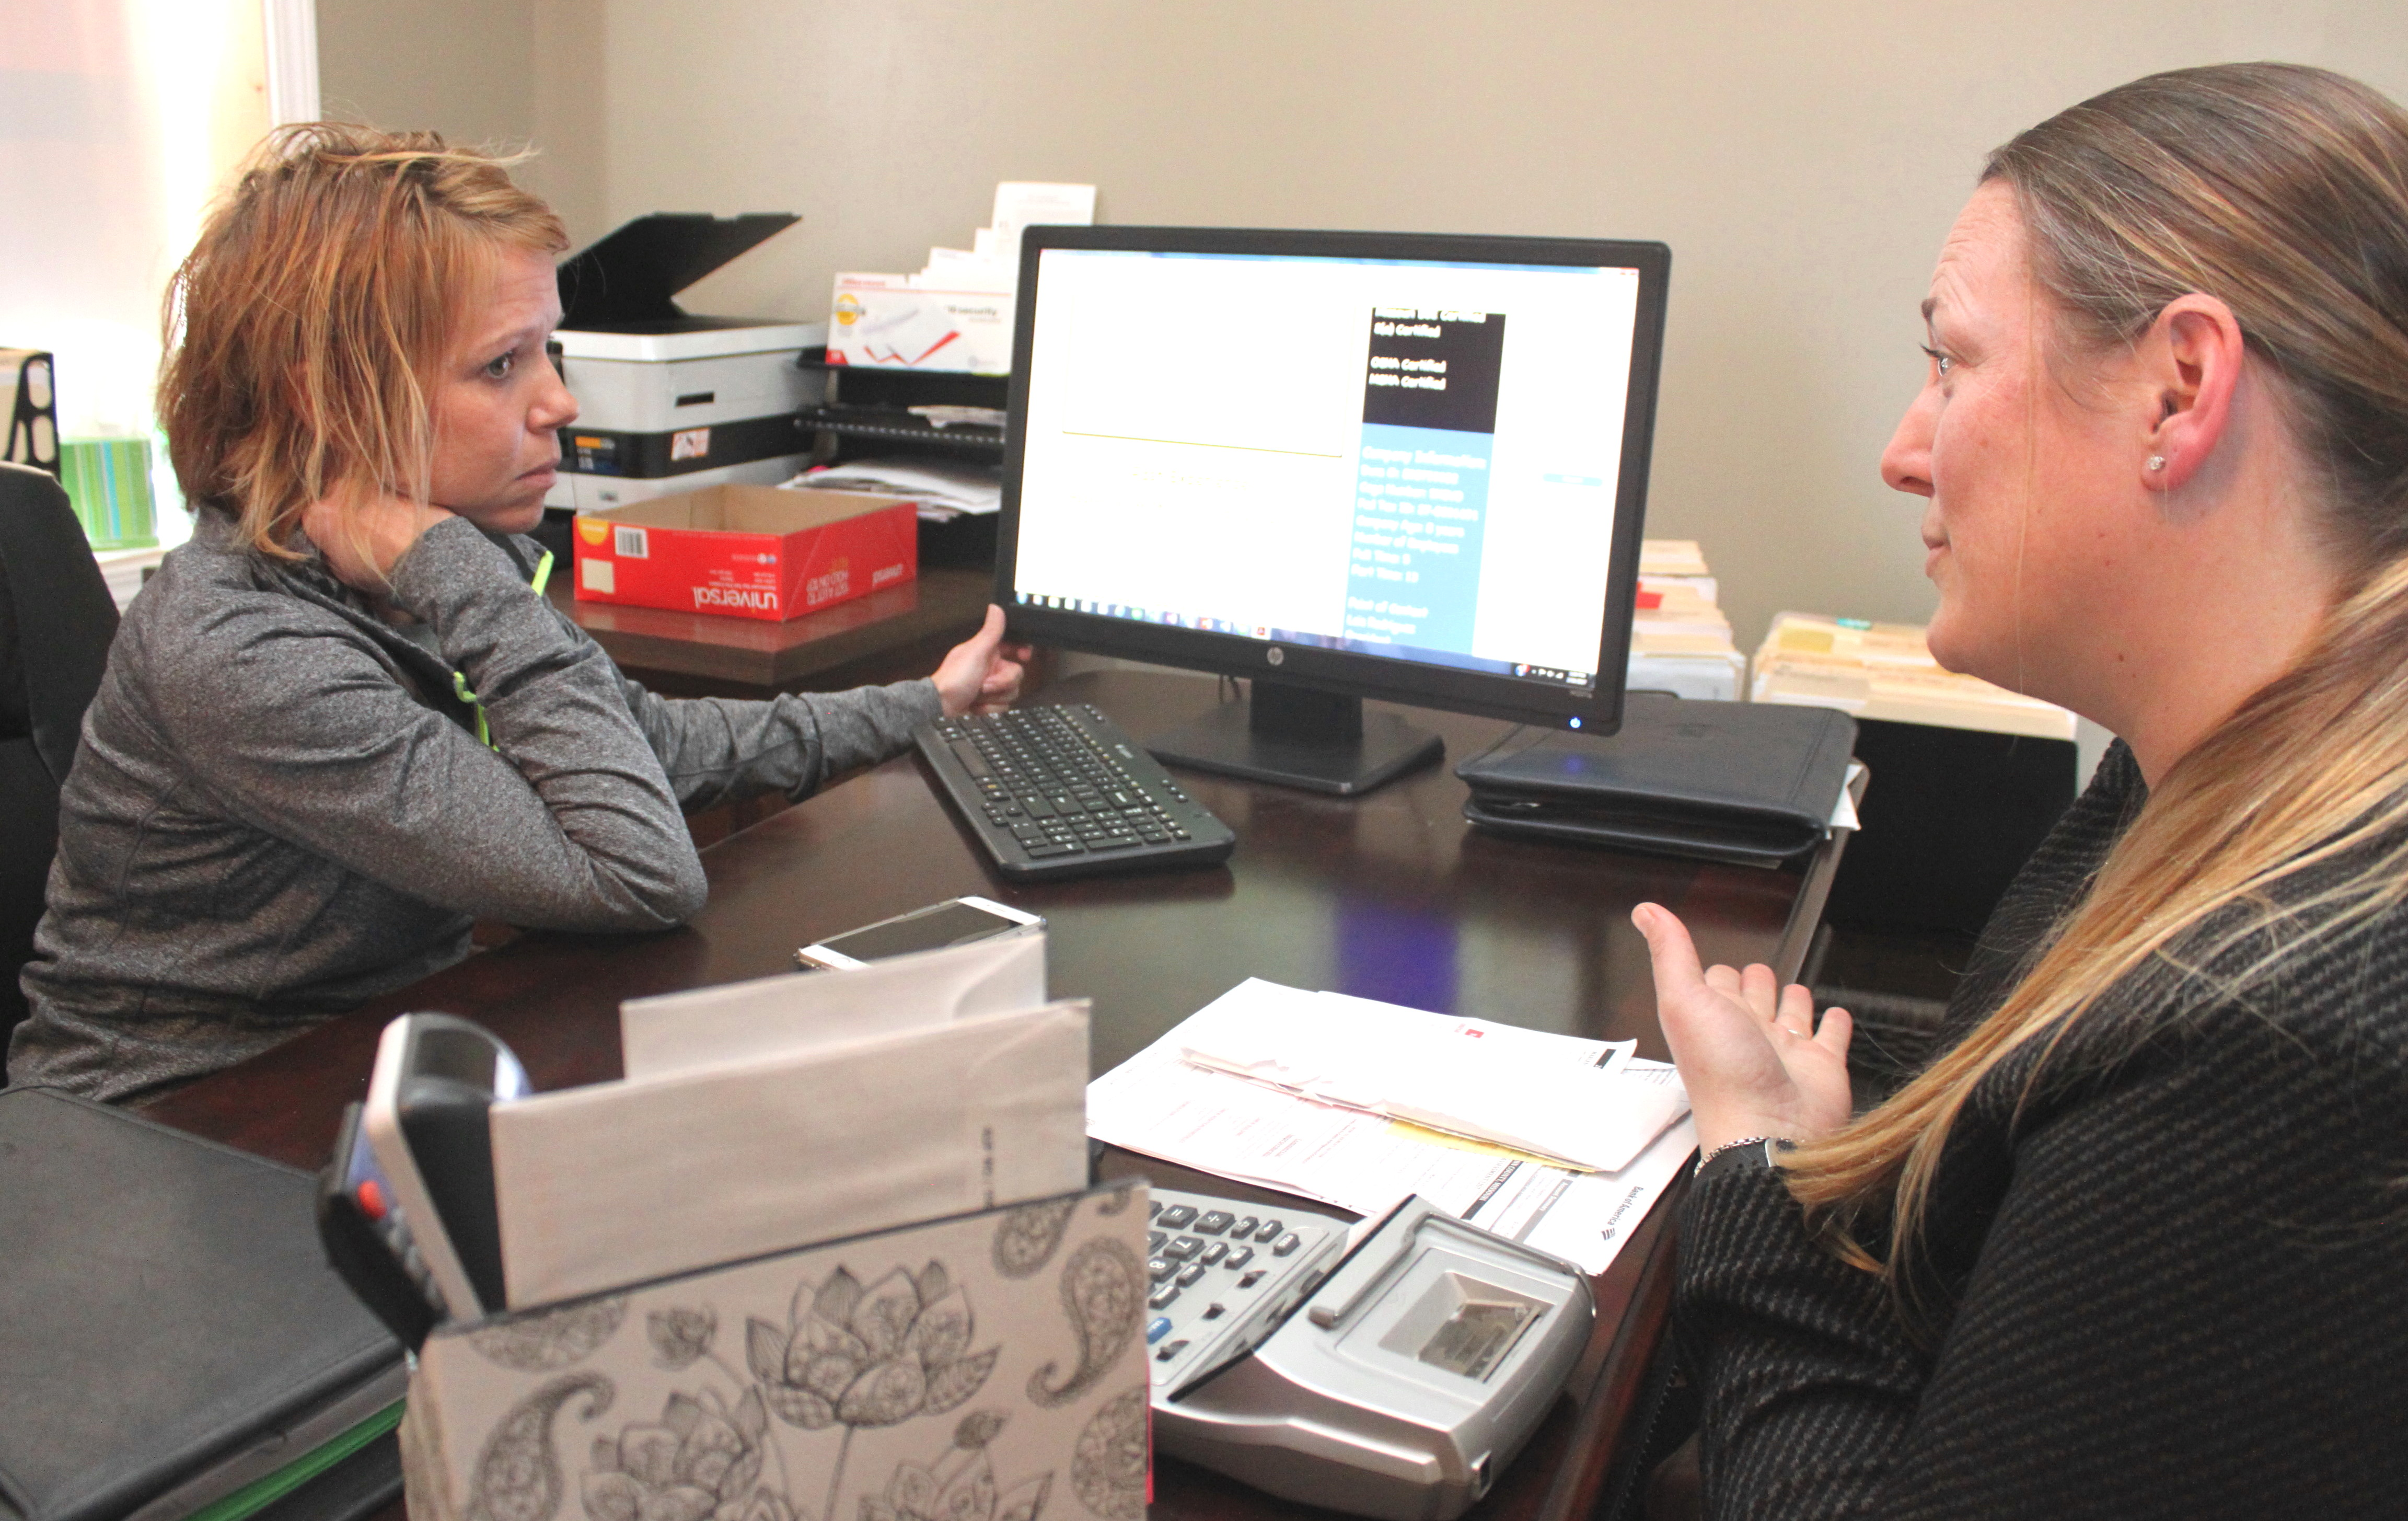 Rodriguez, left, meets with Jana Weitkemper, MO PTAC counselor, at BBD's headquarters in Brookfield, Mo.